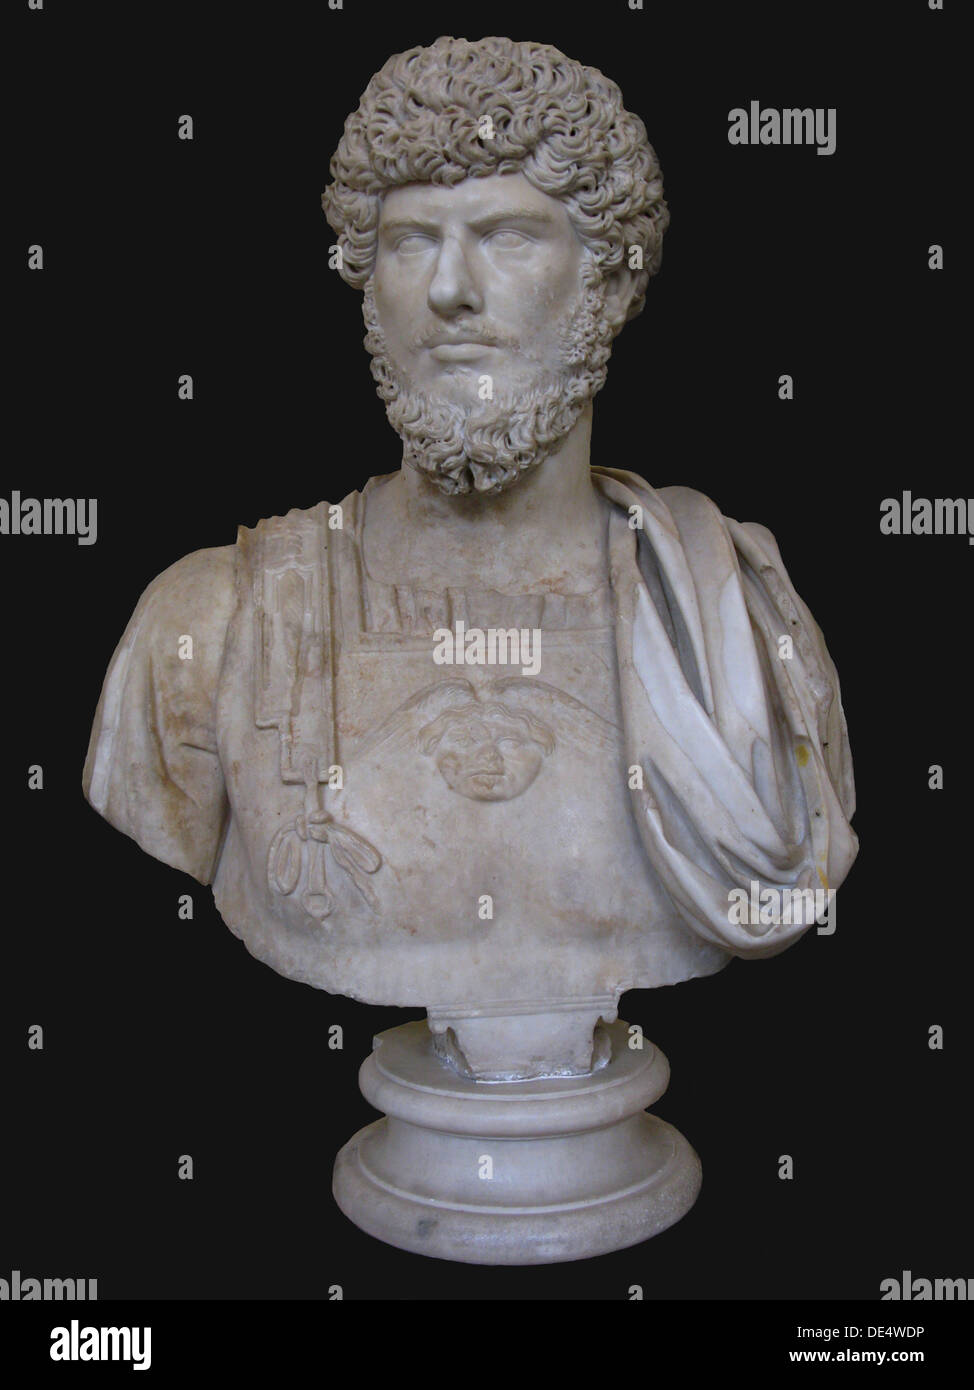 Bust of Lucius Verus, 2nd cen. AD. Artist: Art of Ancient Rome, Classical sculpture - Stock Image